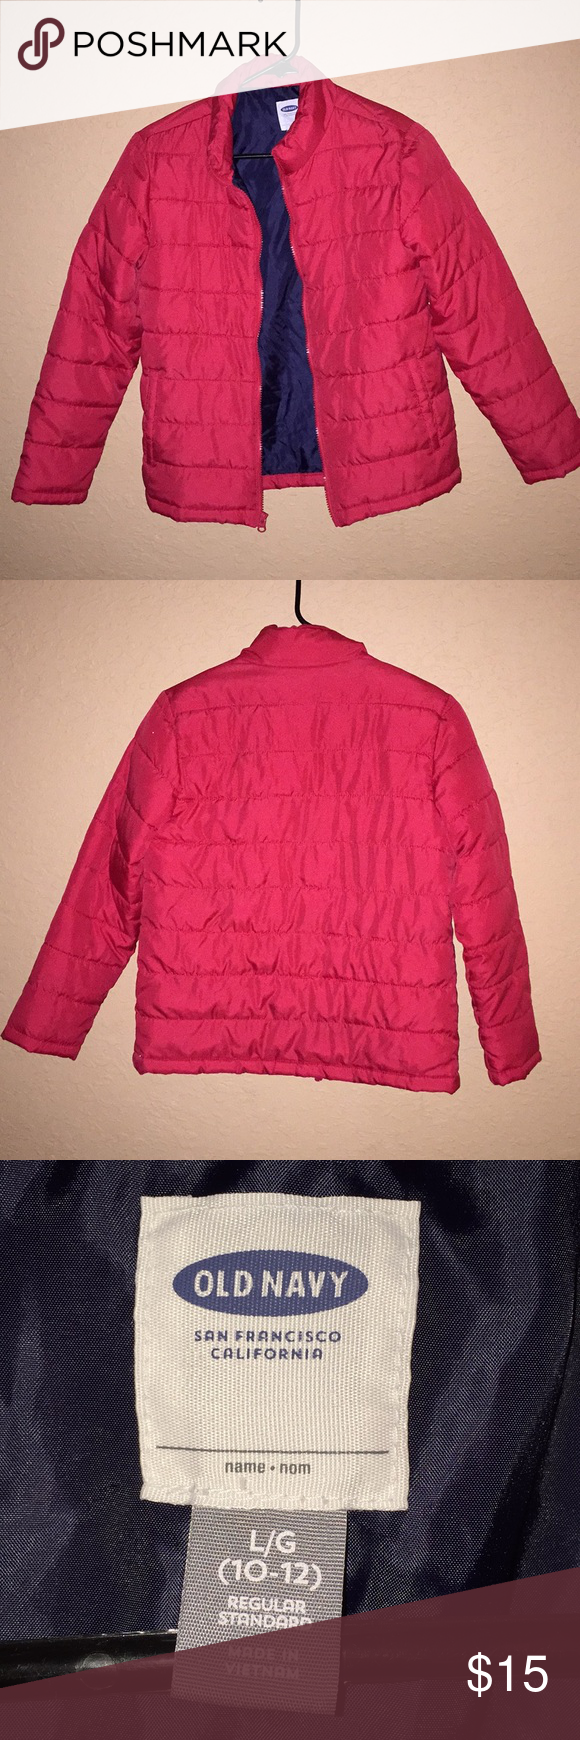 b35deaf17 Kids Puffed Jacket Size 10-12 Worn once My twin boys outgrew jacket Fl just  doesn't get that cold Old Navy Jackets & Coats Puffers